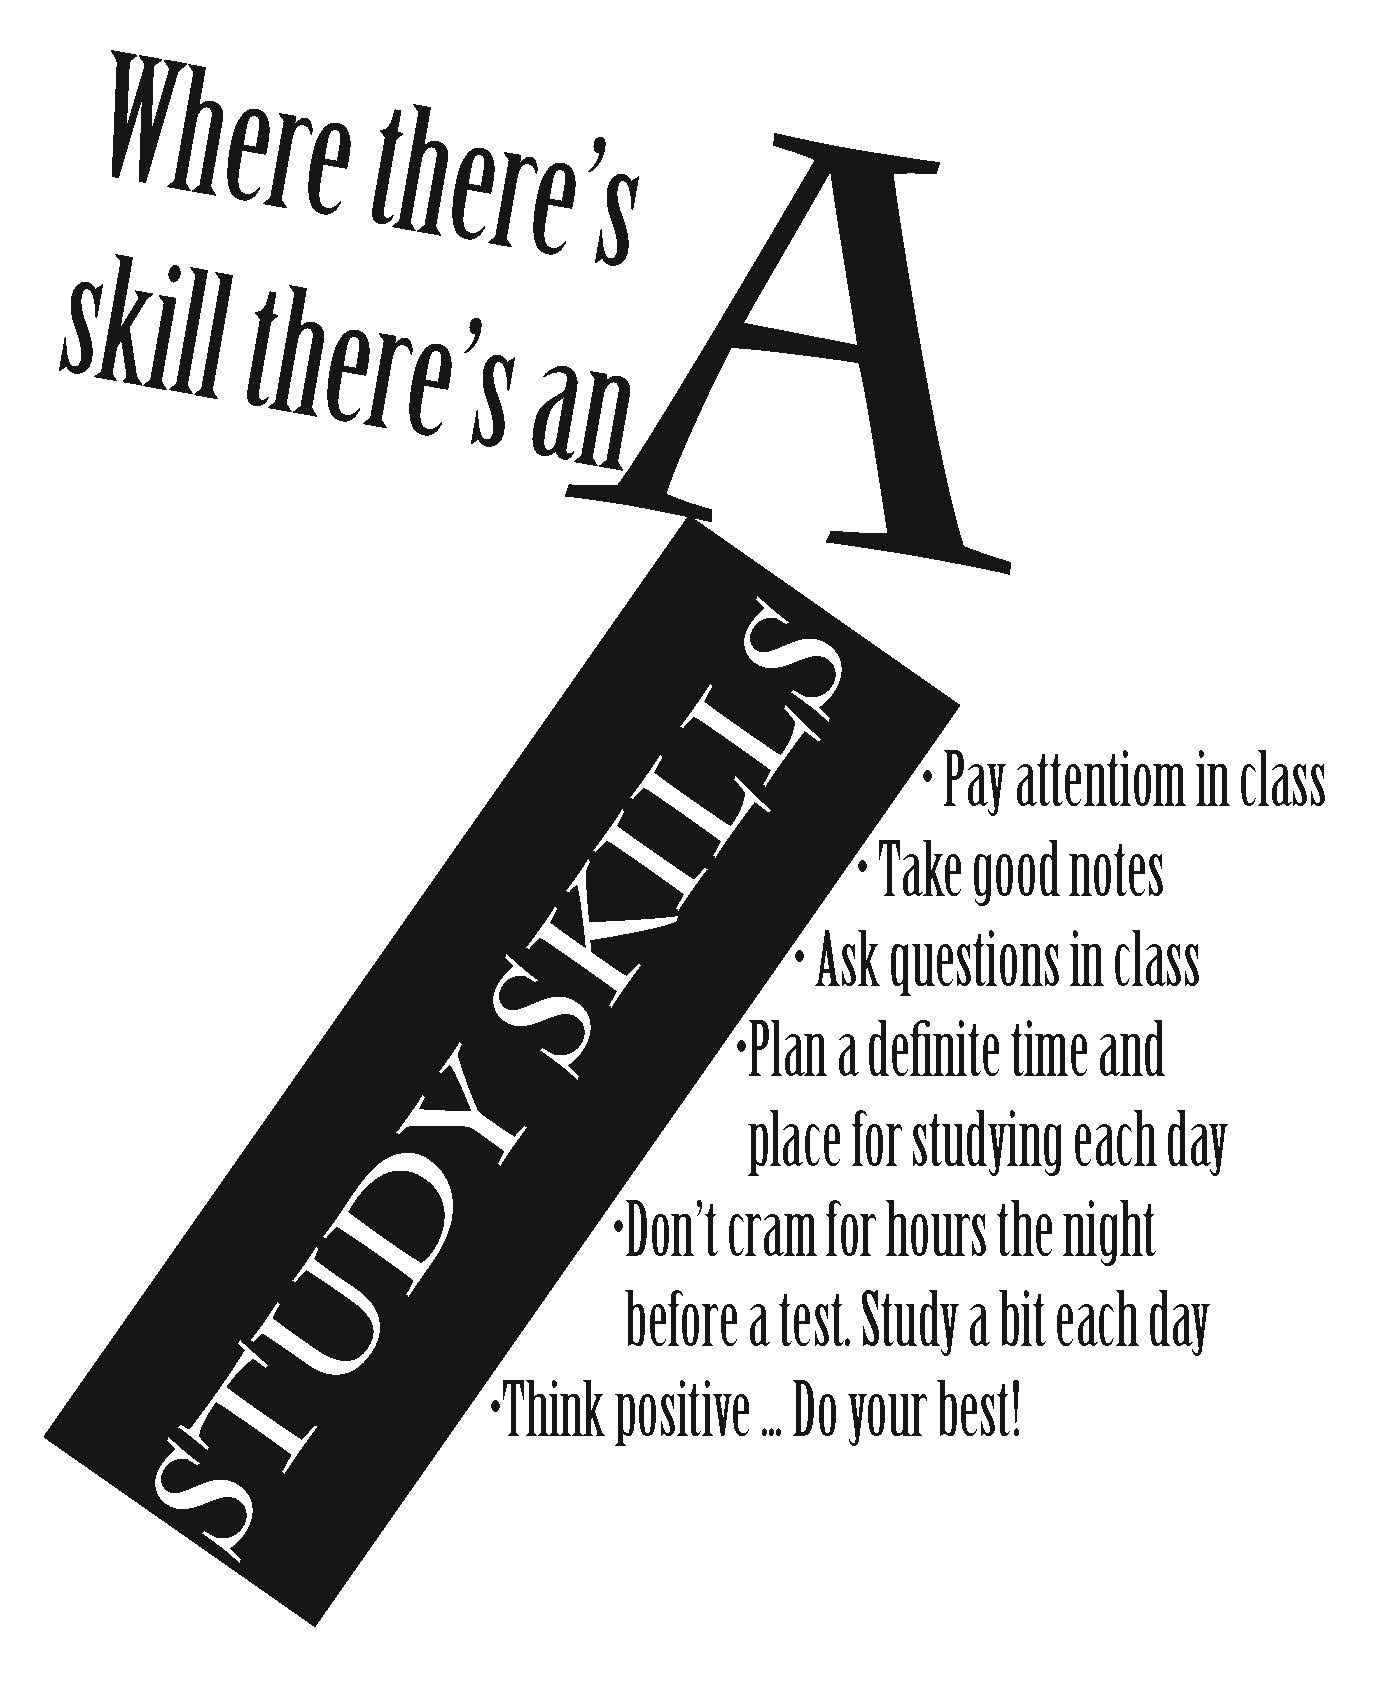 A poster promoting a list of study skills.